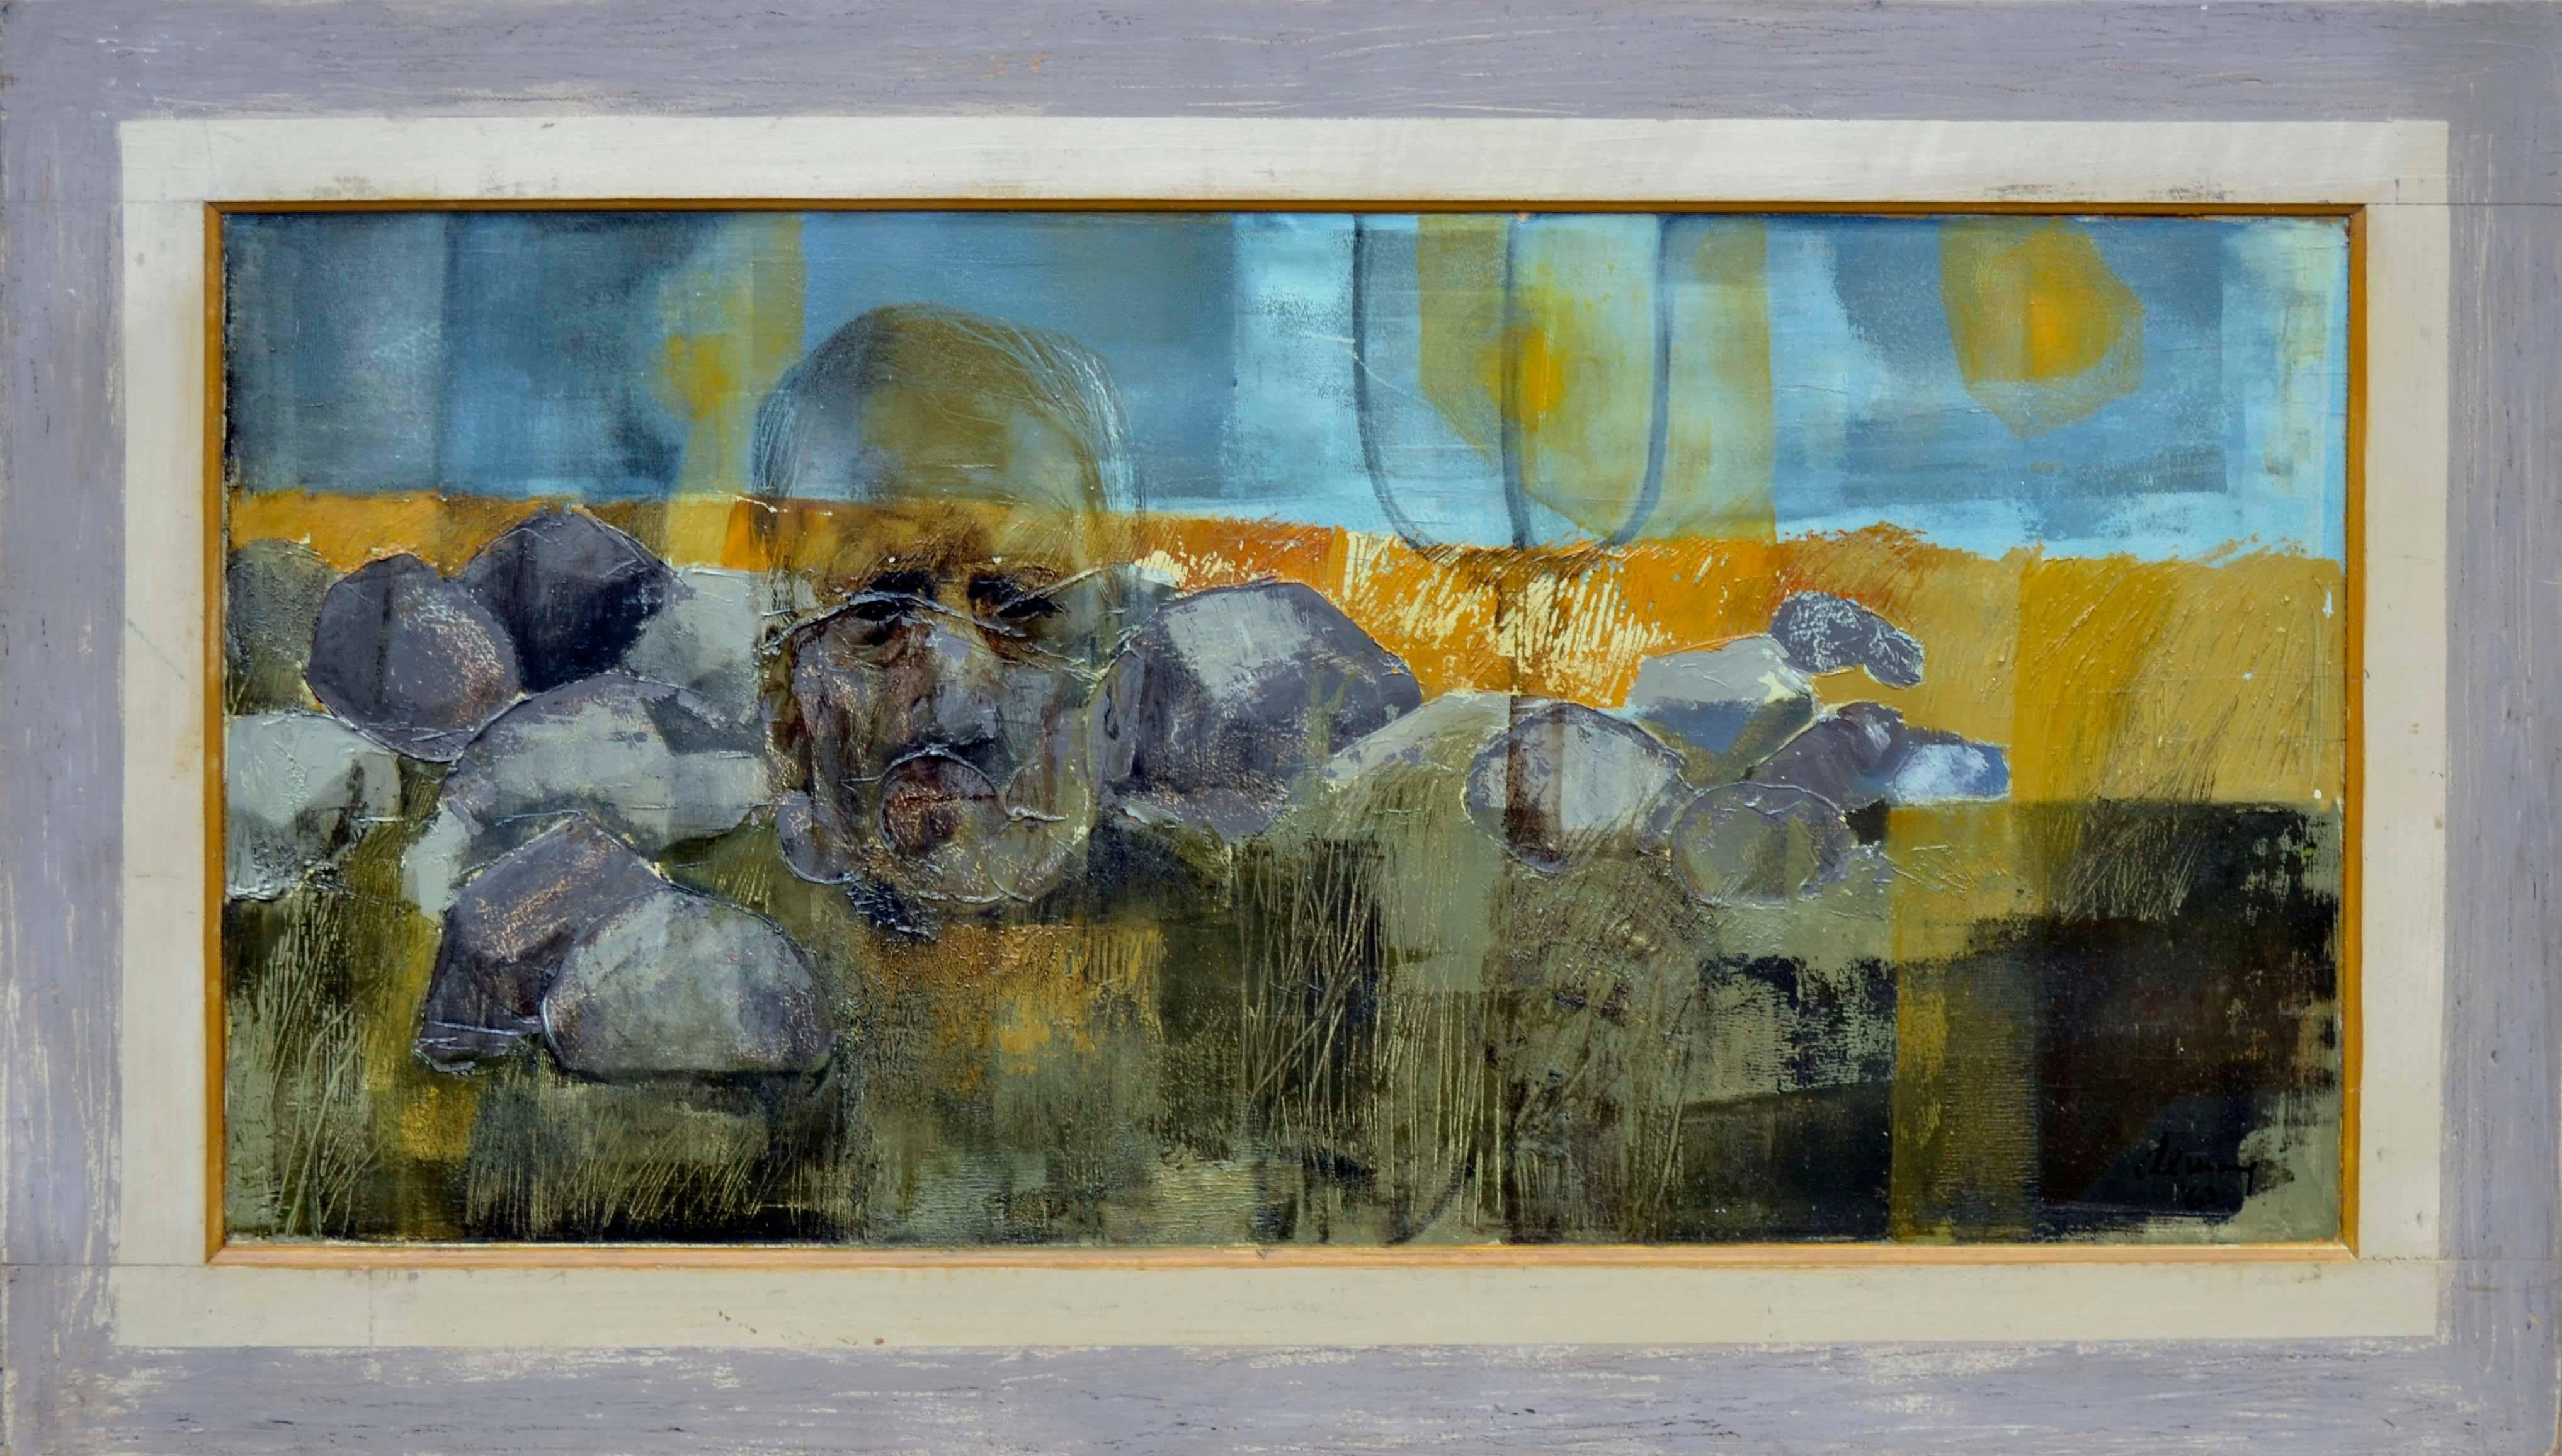 Homage to Asa, American Gothic Figurative Abstract